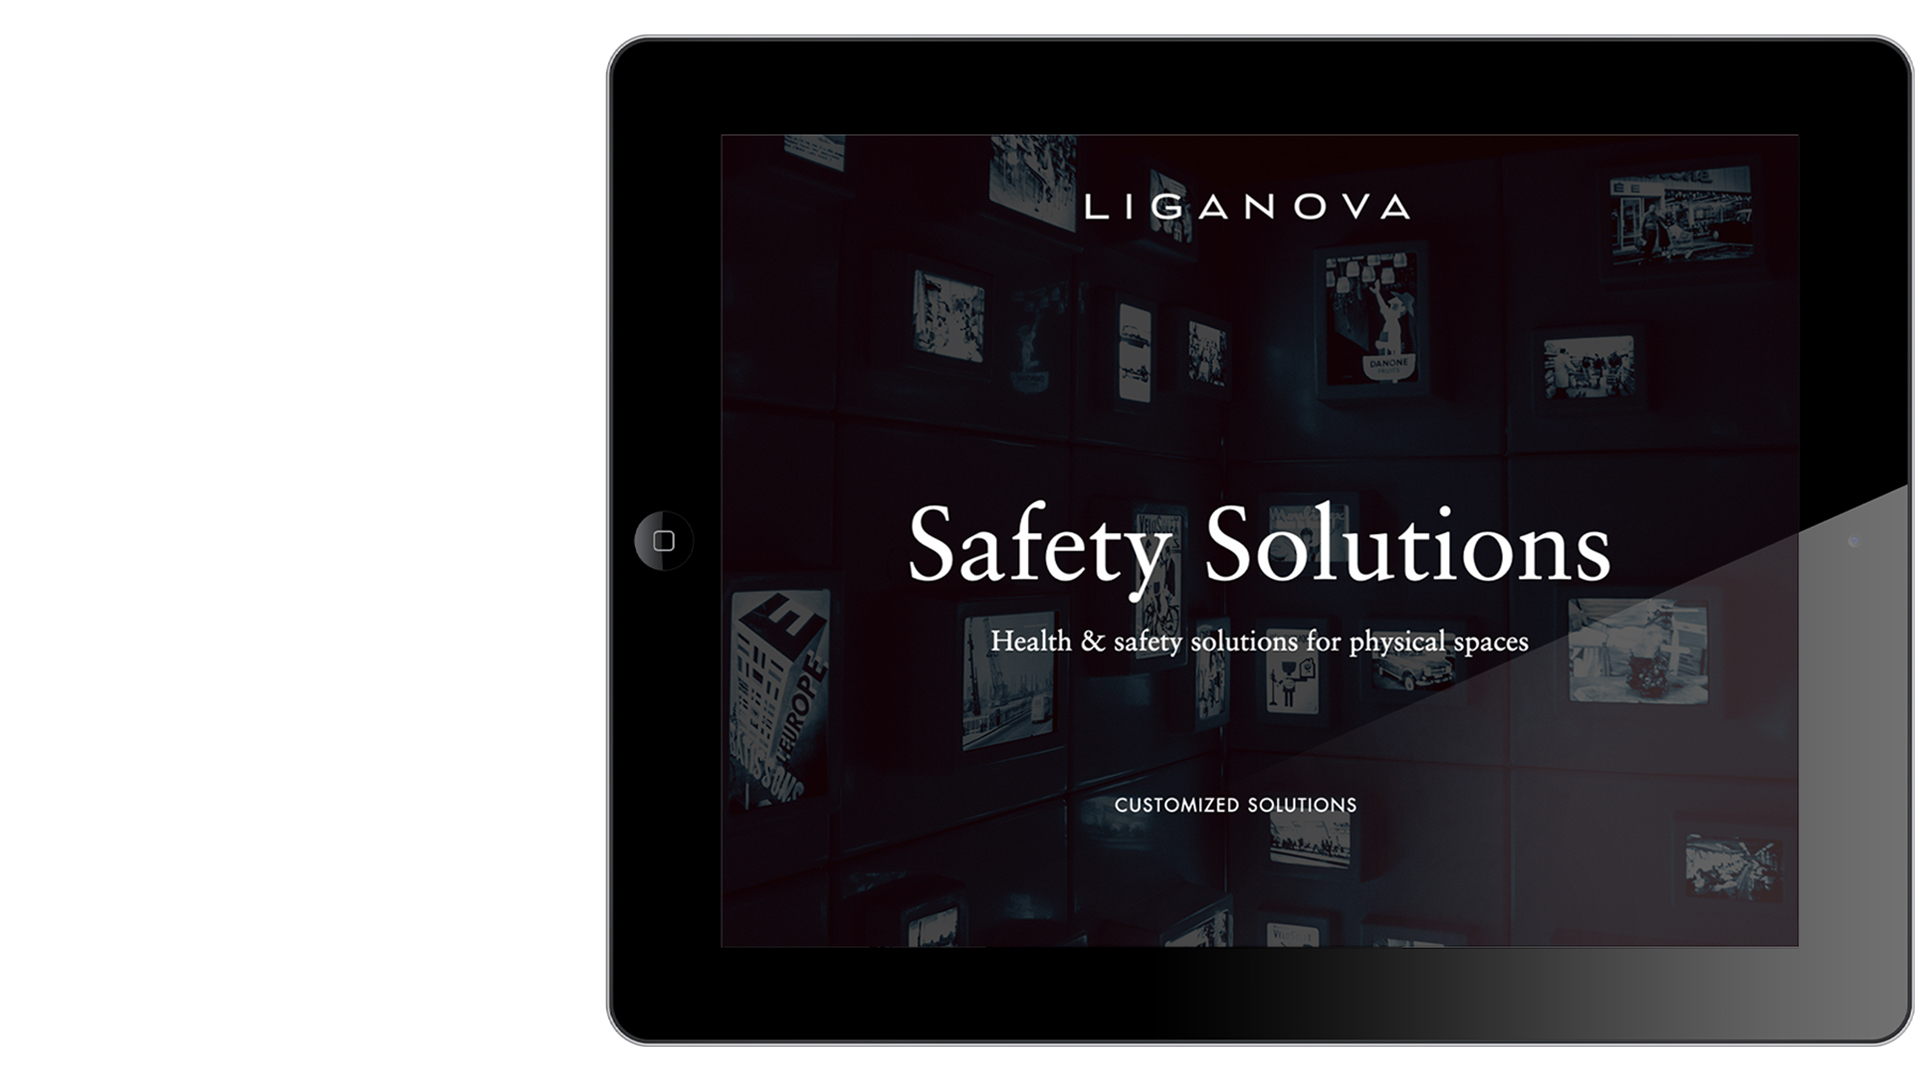 LIGANOVA   Safety Solutions   Customized Solutions